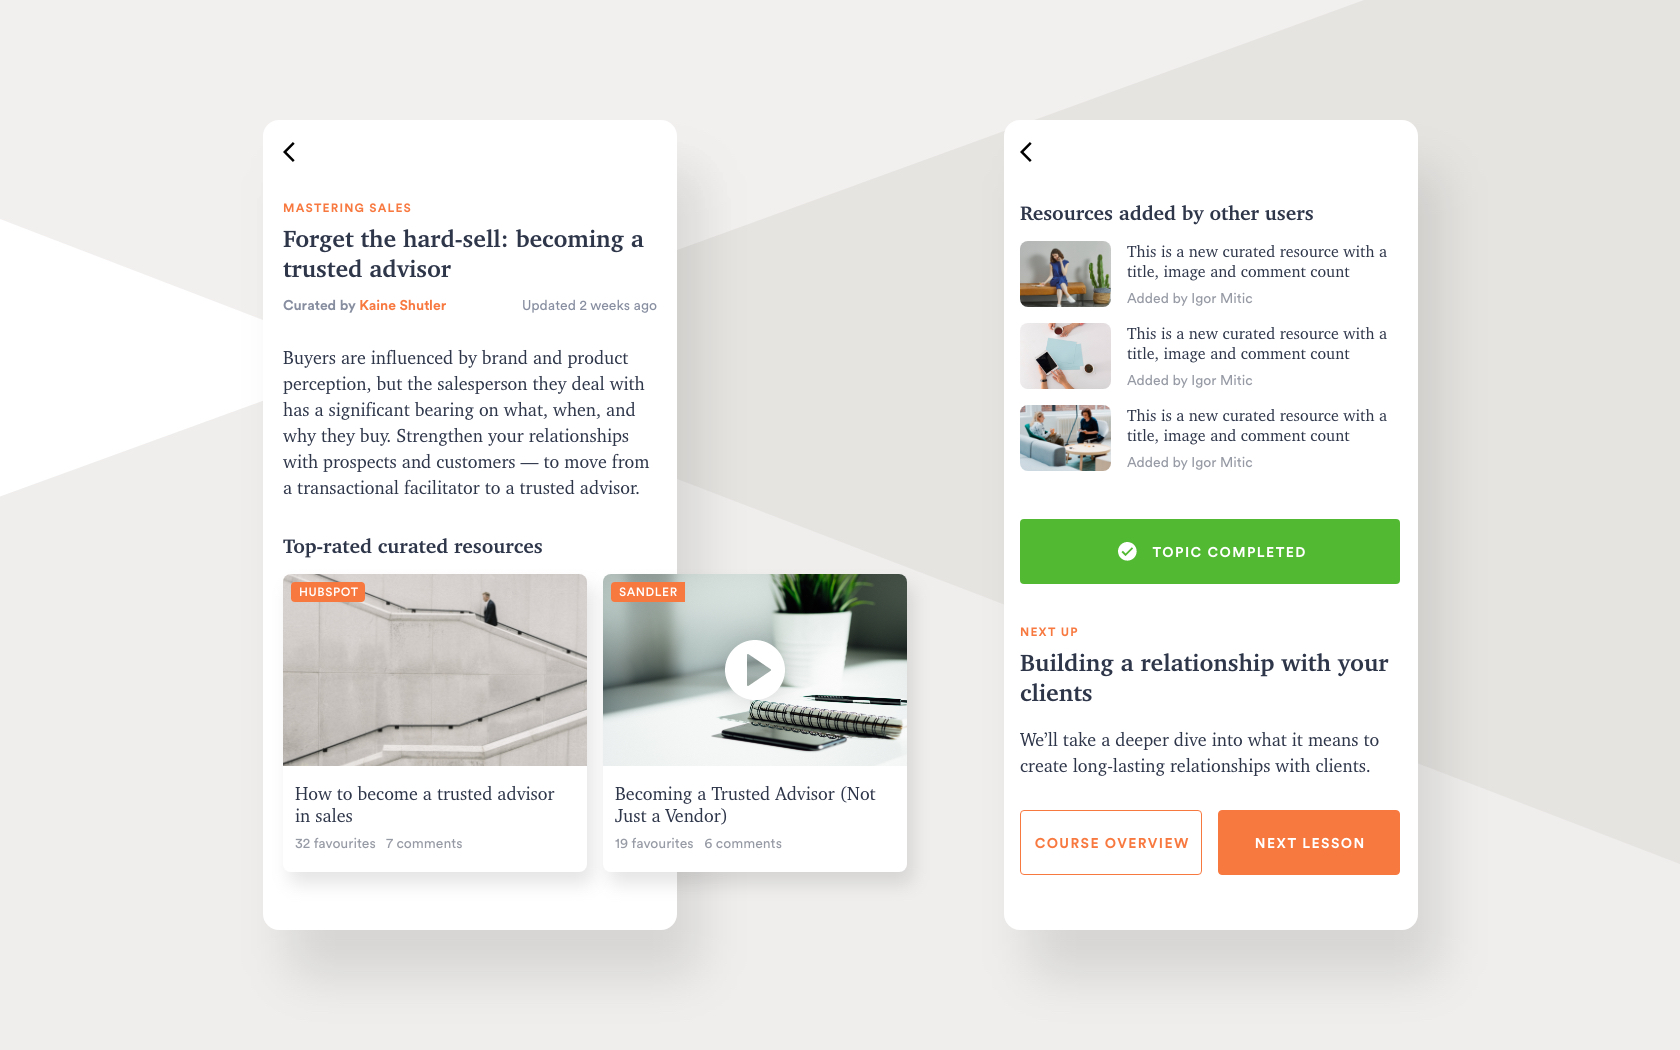 elarning platform for curated content